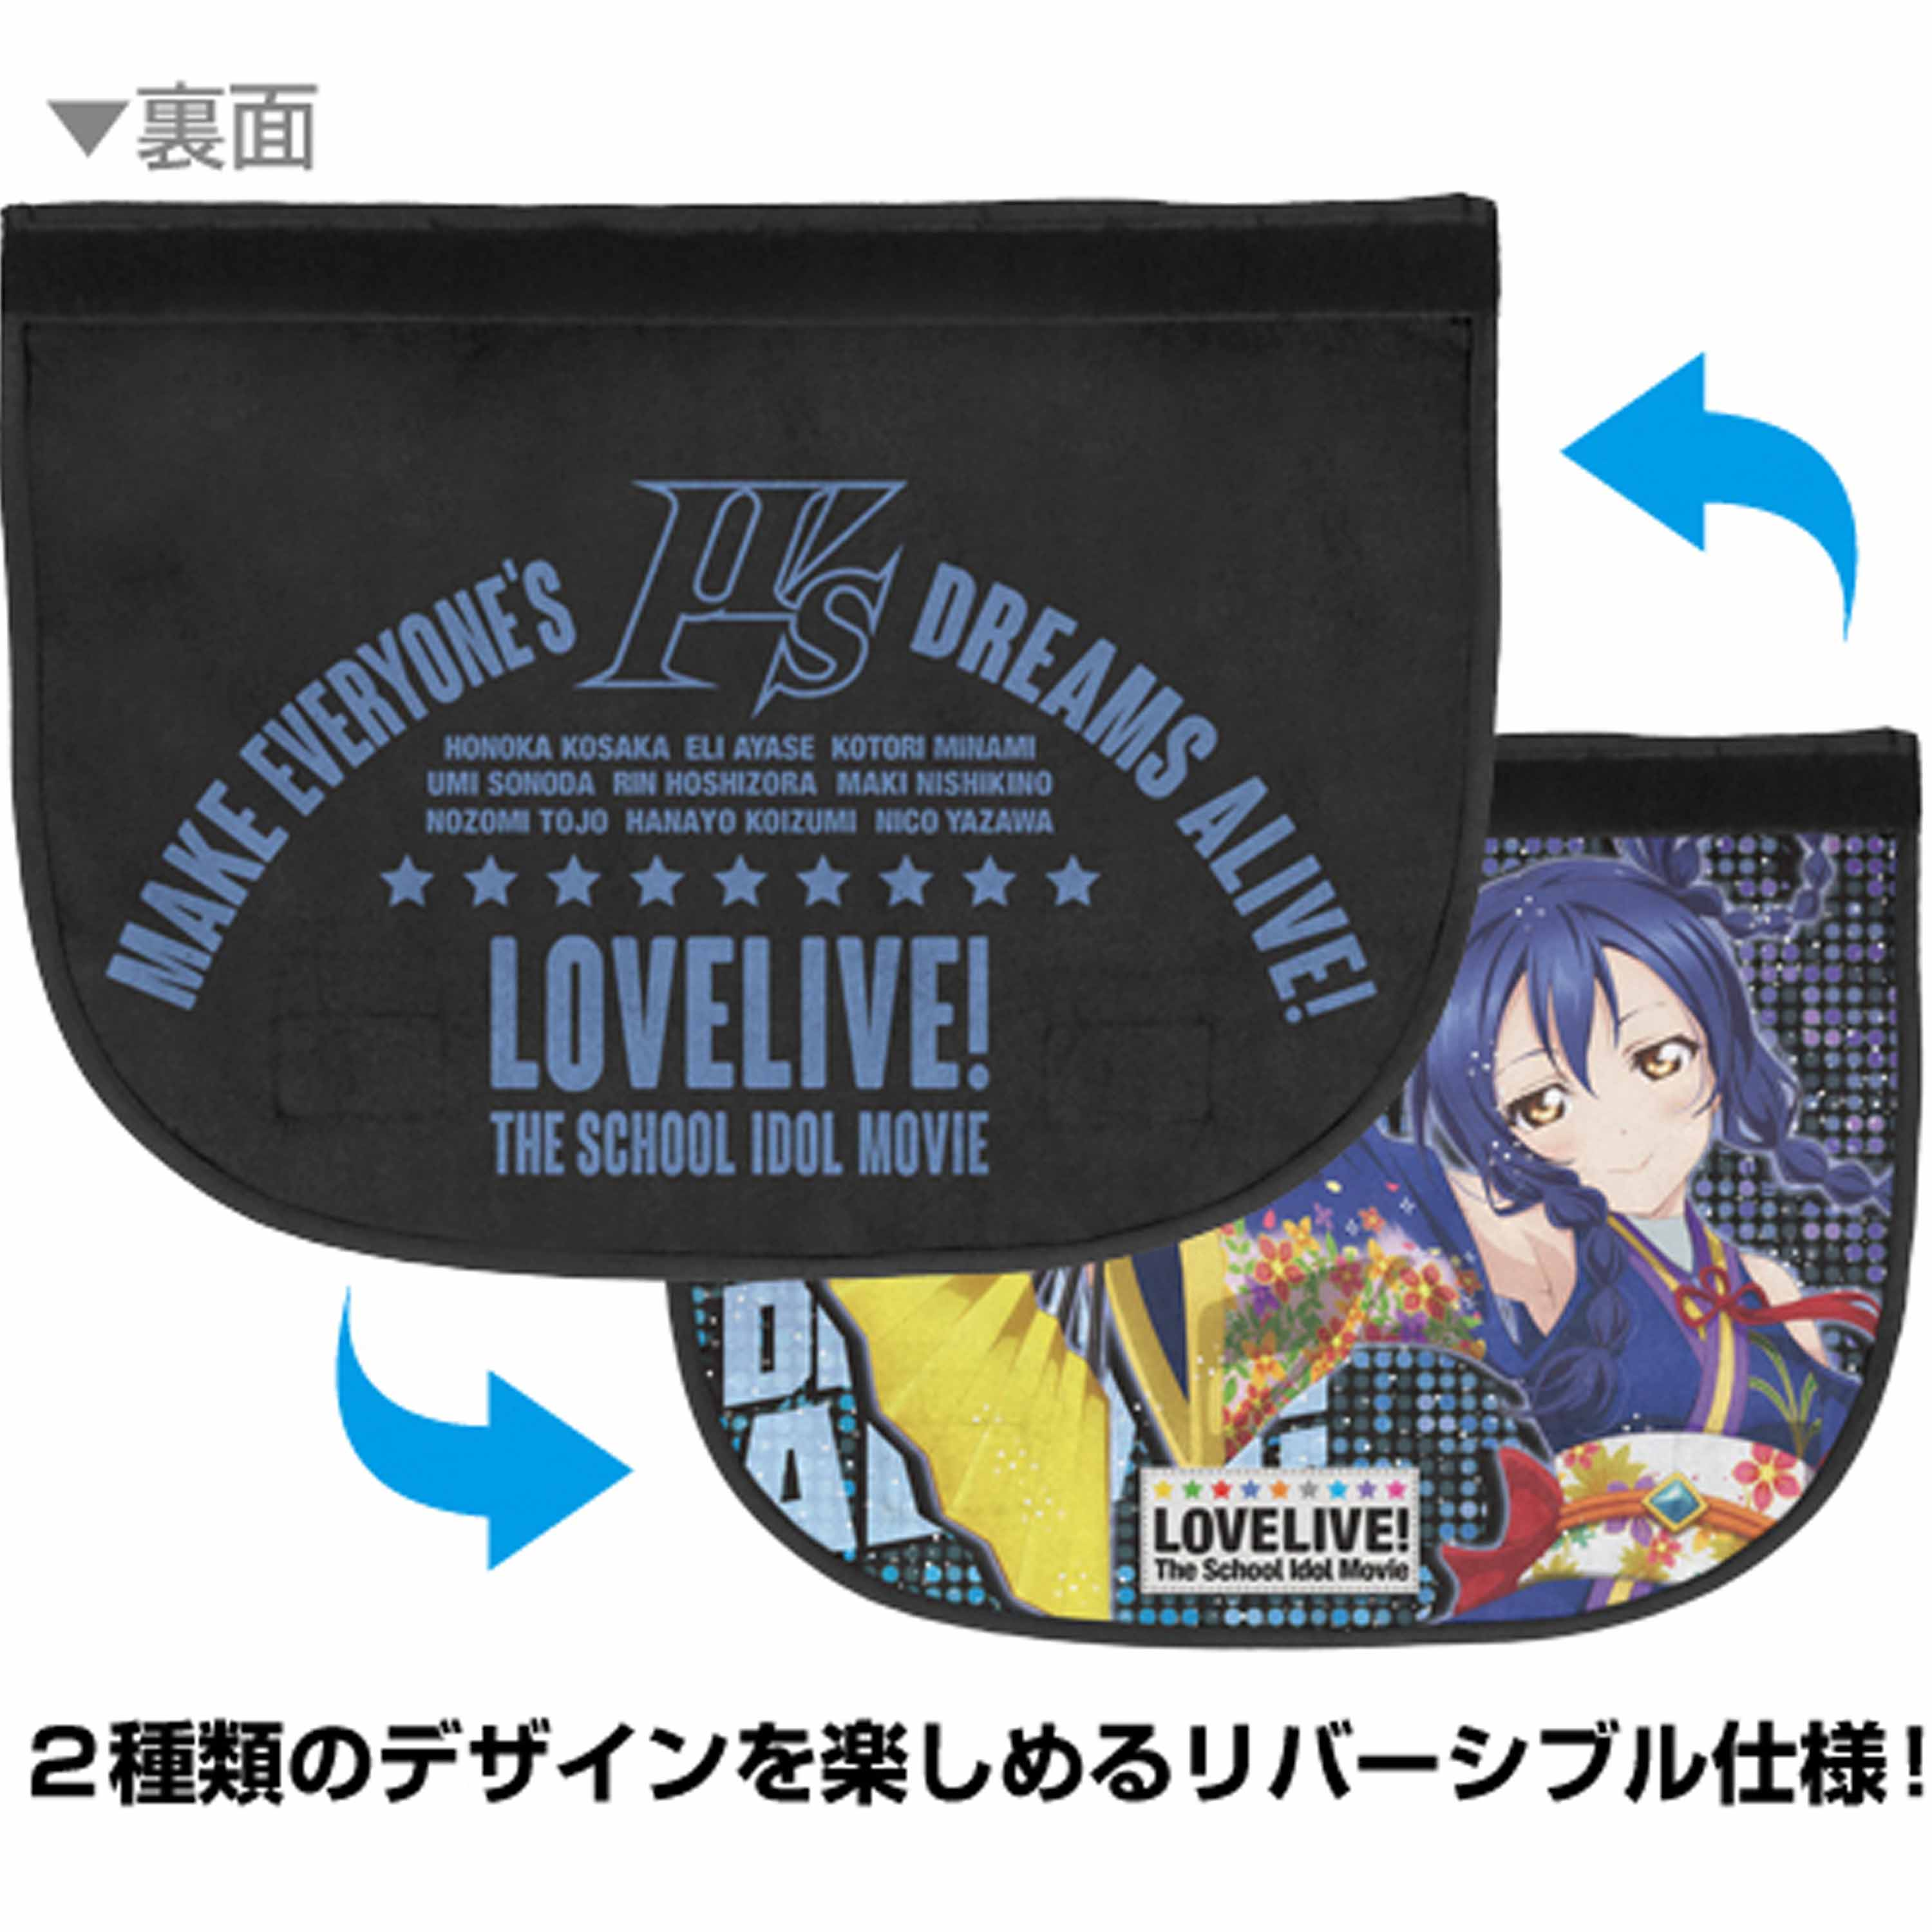 Sonoda Umi Reversible Messenger Bag